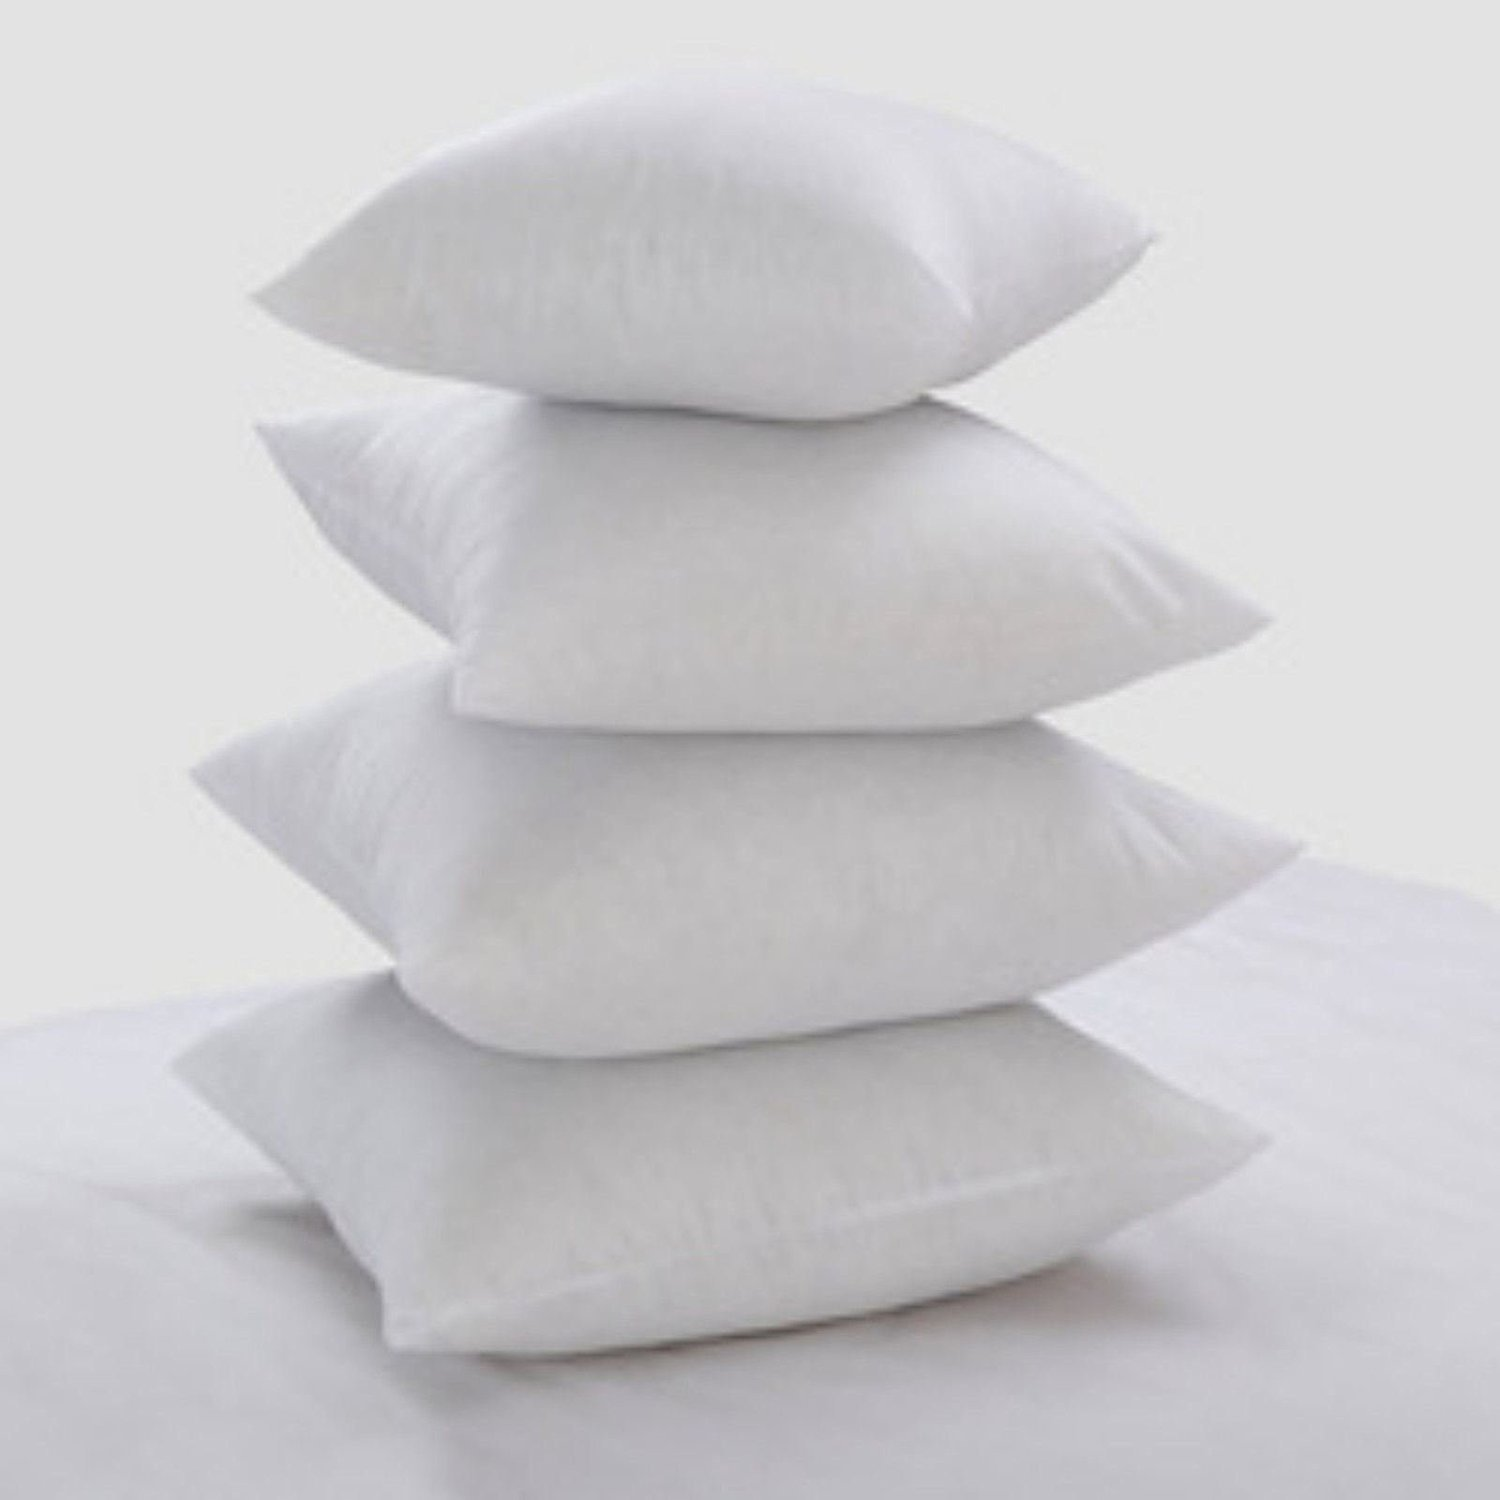 Bluemoon Bedding® Set of 4 - Luxury New White Hollowfibre Cushion Pad Inner Insert Double Stitched Seams - Non Allergenic - Machine Washable by 14